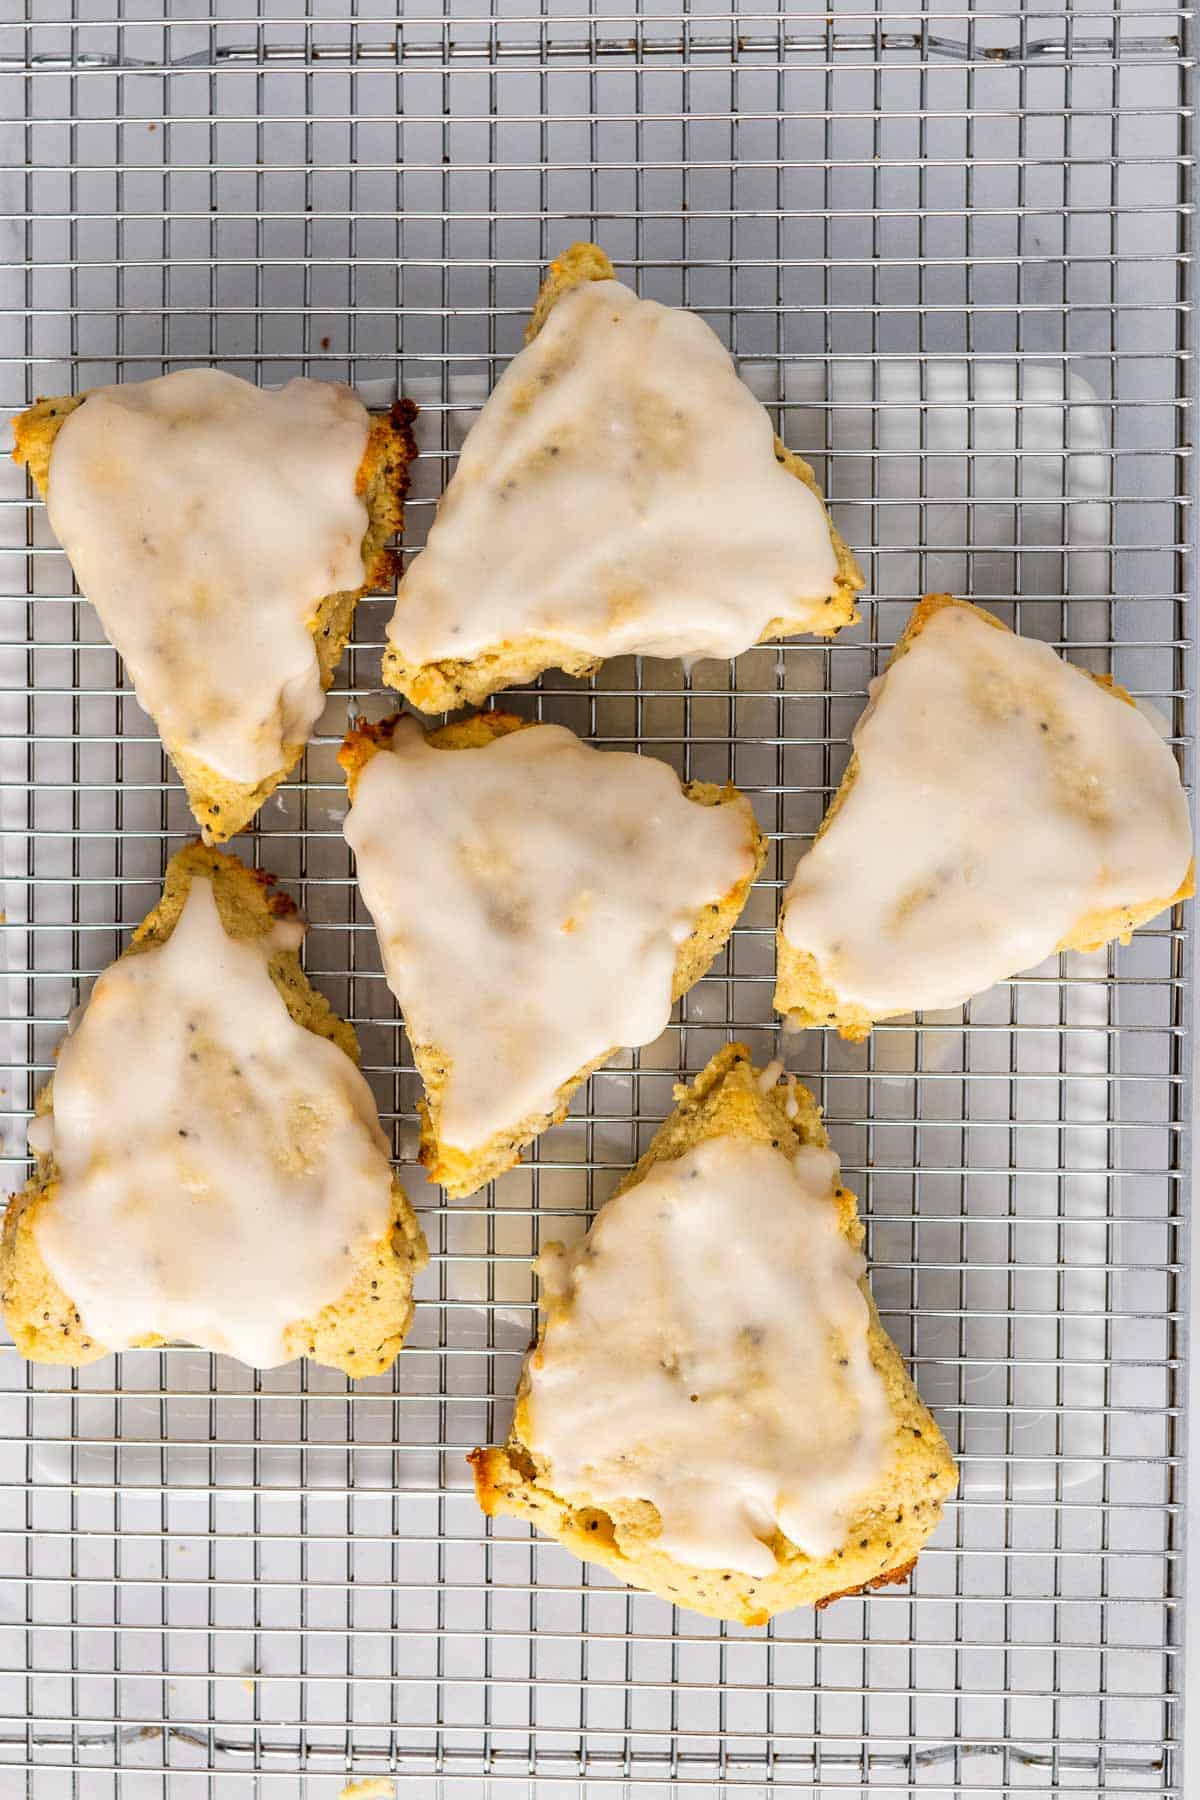 Six scones on a wire cooling rack with lemon glaze added, as seen from above